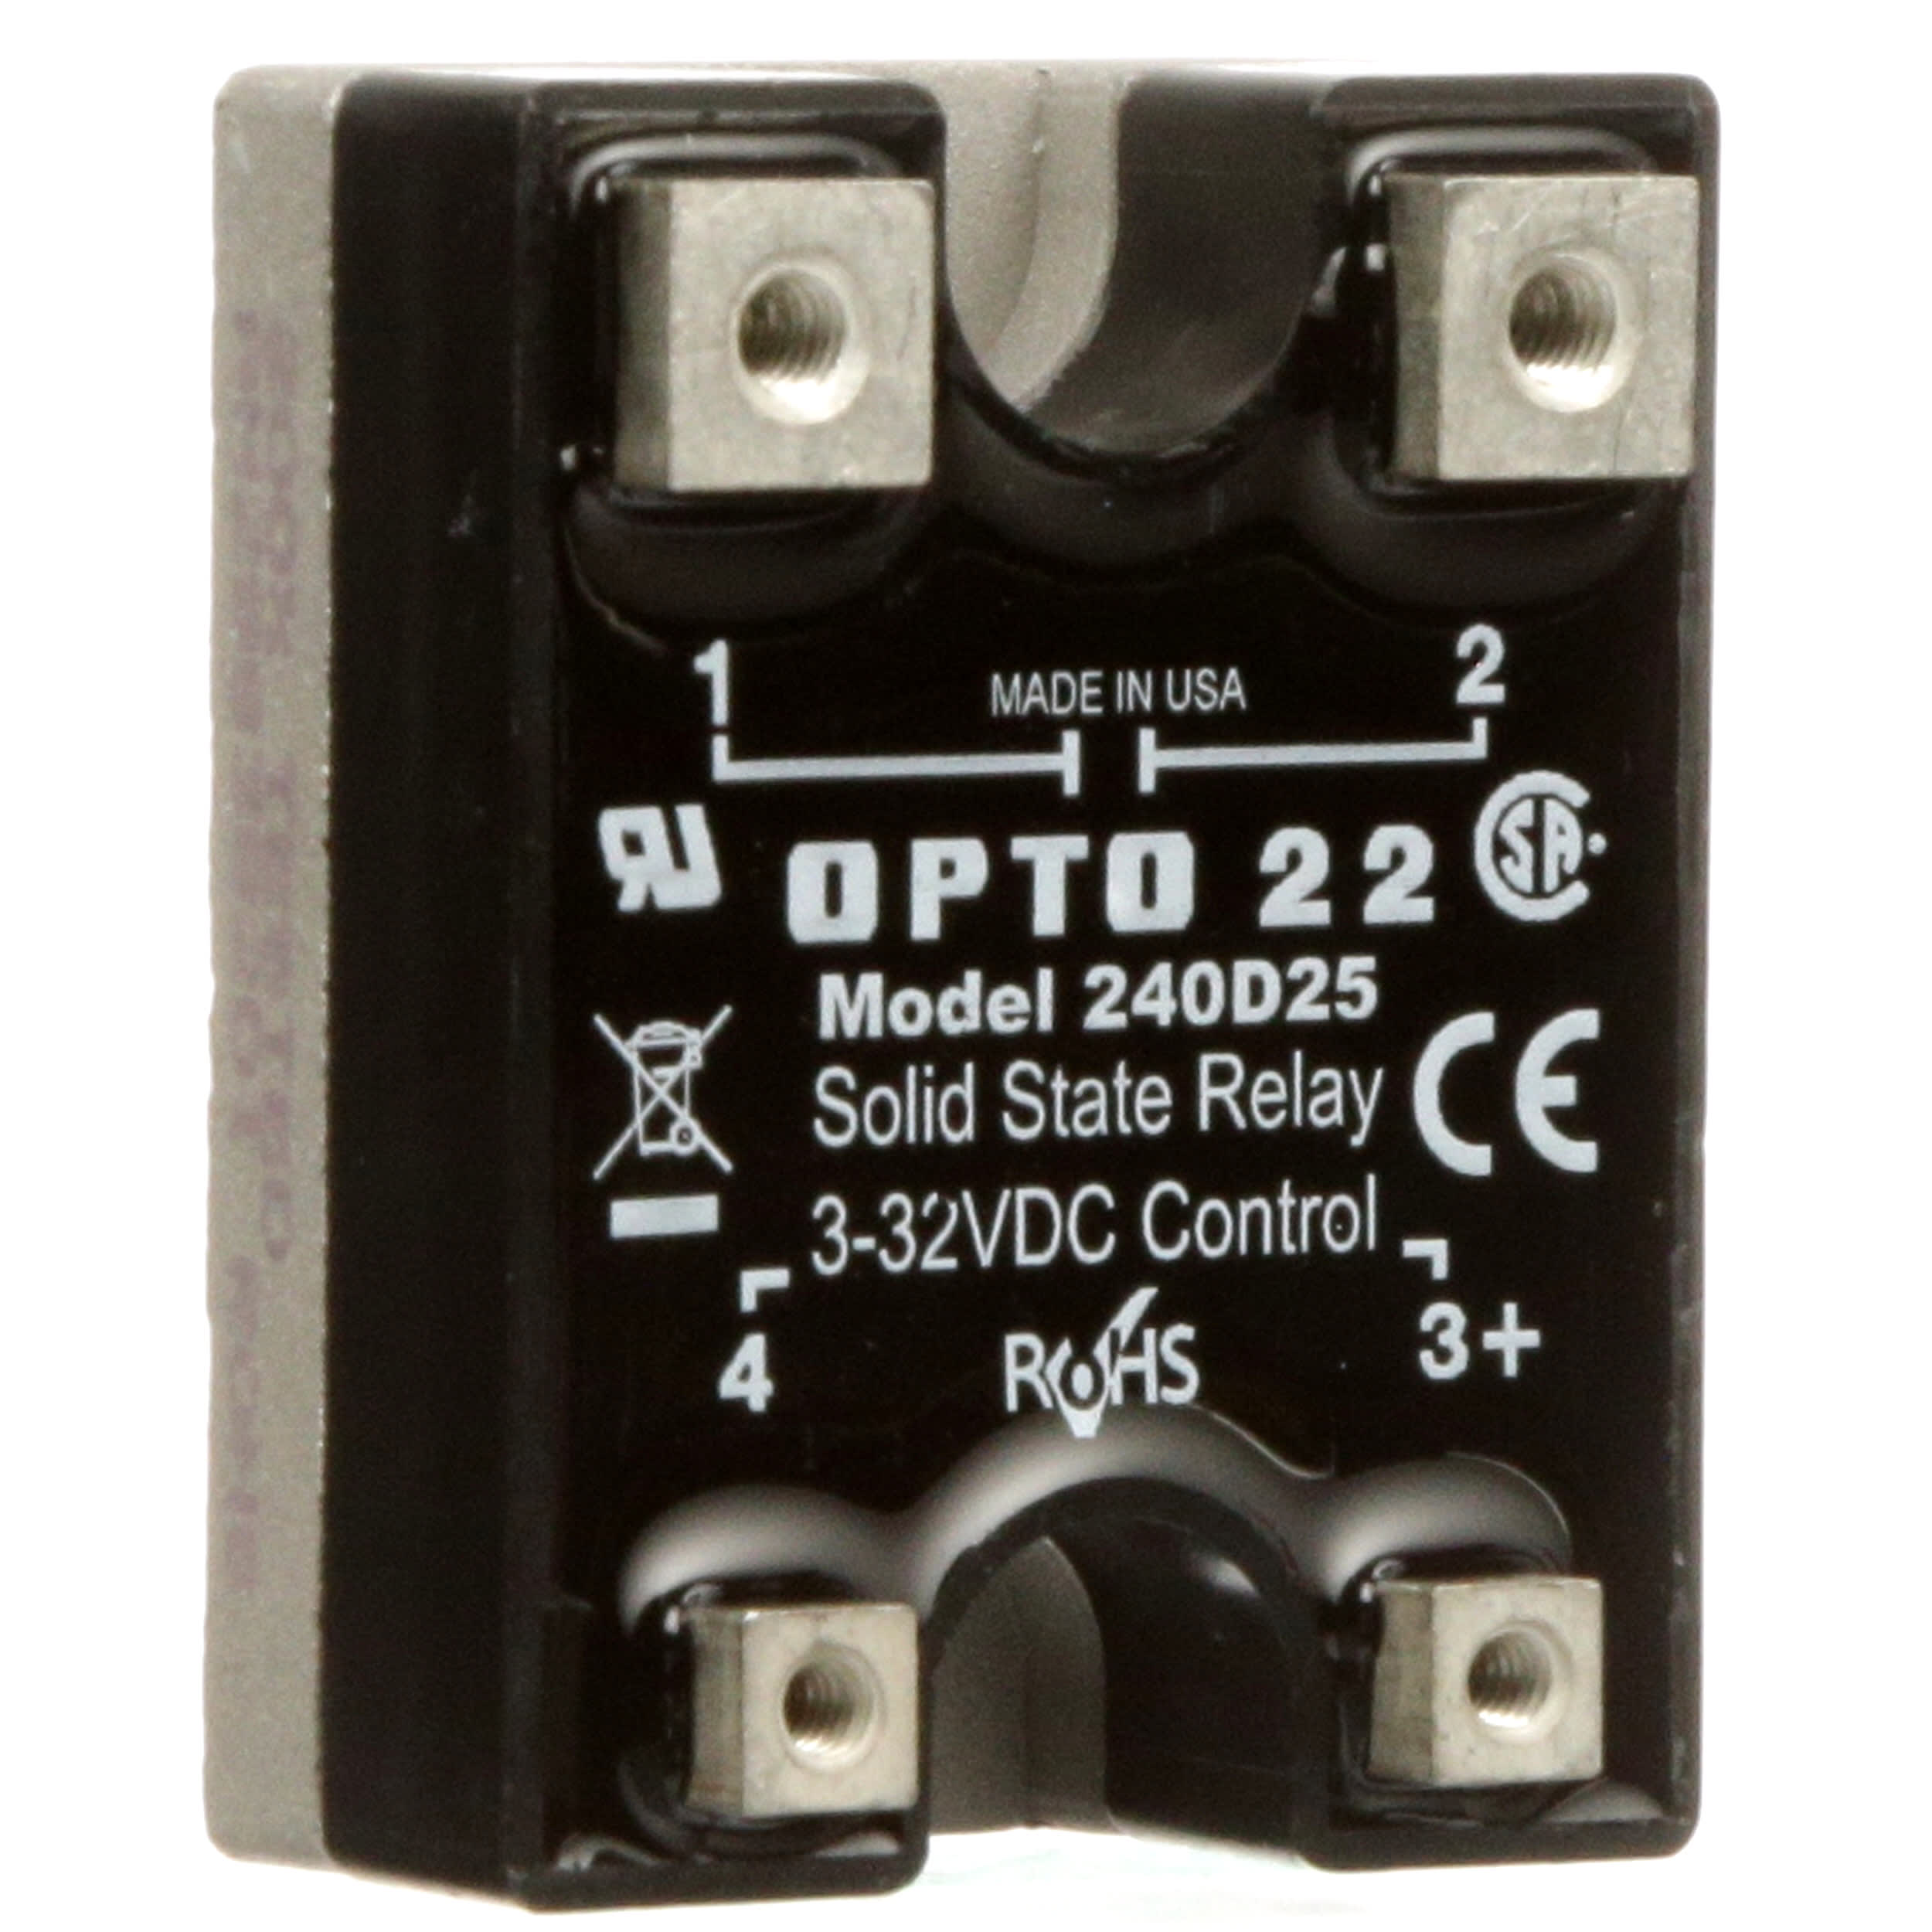 [SODI_2457]   Opto 22 - 240D25 - Solid State Relay, 32 VDC, SPST-NO, 25A/240V, DC  Switching, DC Series - Allied Electronics & Automation | Opto 22 Ssr Wiring Diagram |  | Allied Electronics